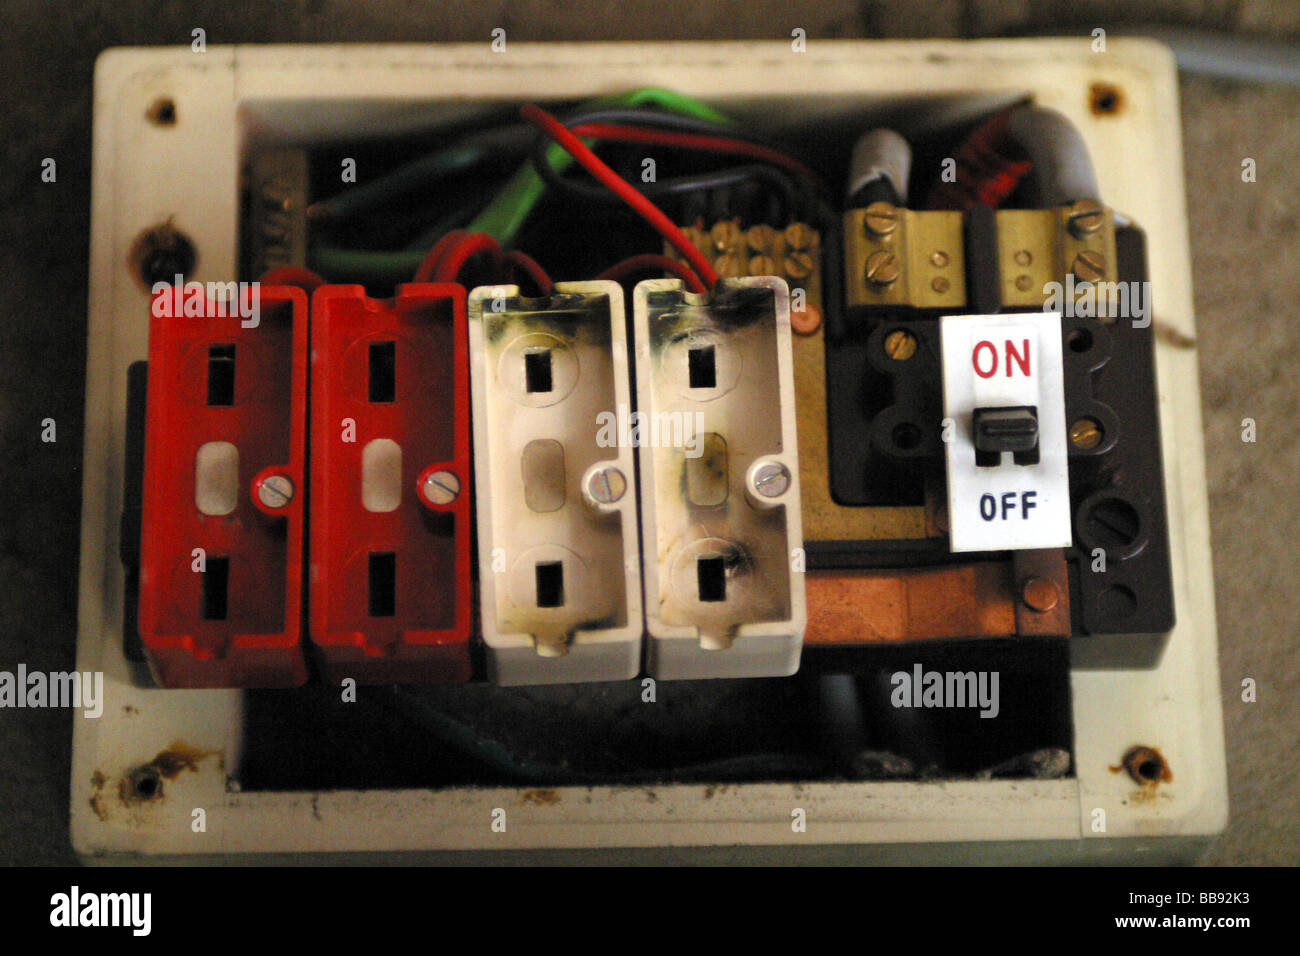 Old Fuses Fuse Box Stock Photos & Old Fuses Fuse Box Stock ... on old style fuel gauge, old style tie rod, old type fuse boxes, old electrical panels, old breaker box fuses, old style water pump, old style gas cap, old style cable box, 100 amp electrical box, old style front door, old style steering wheel, old electrical breakers, circuit breaker box, old 100 amp breaker panel, old style headlight switch, old style fuel pump, old style drag link,